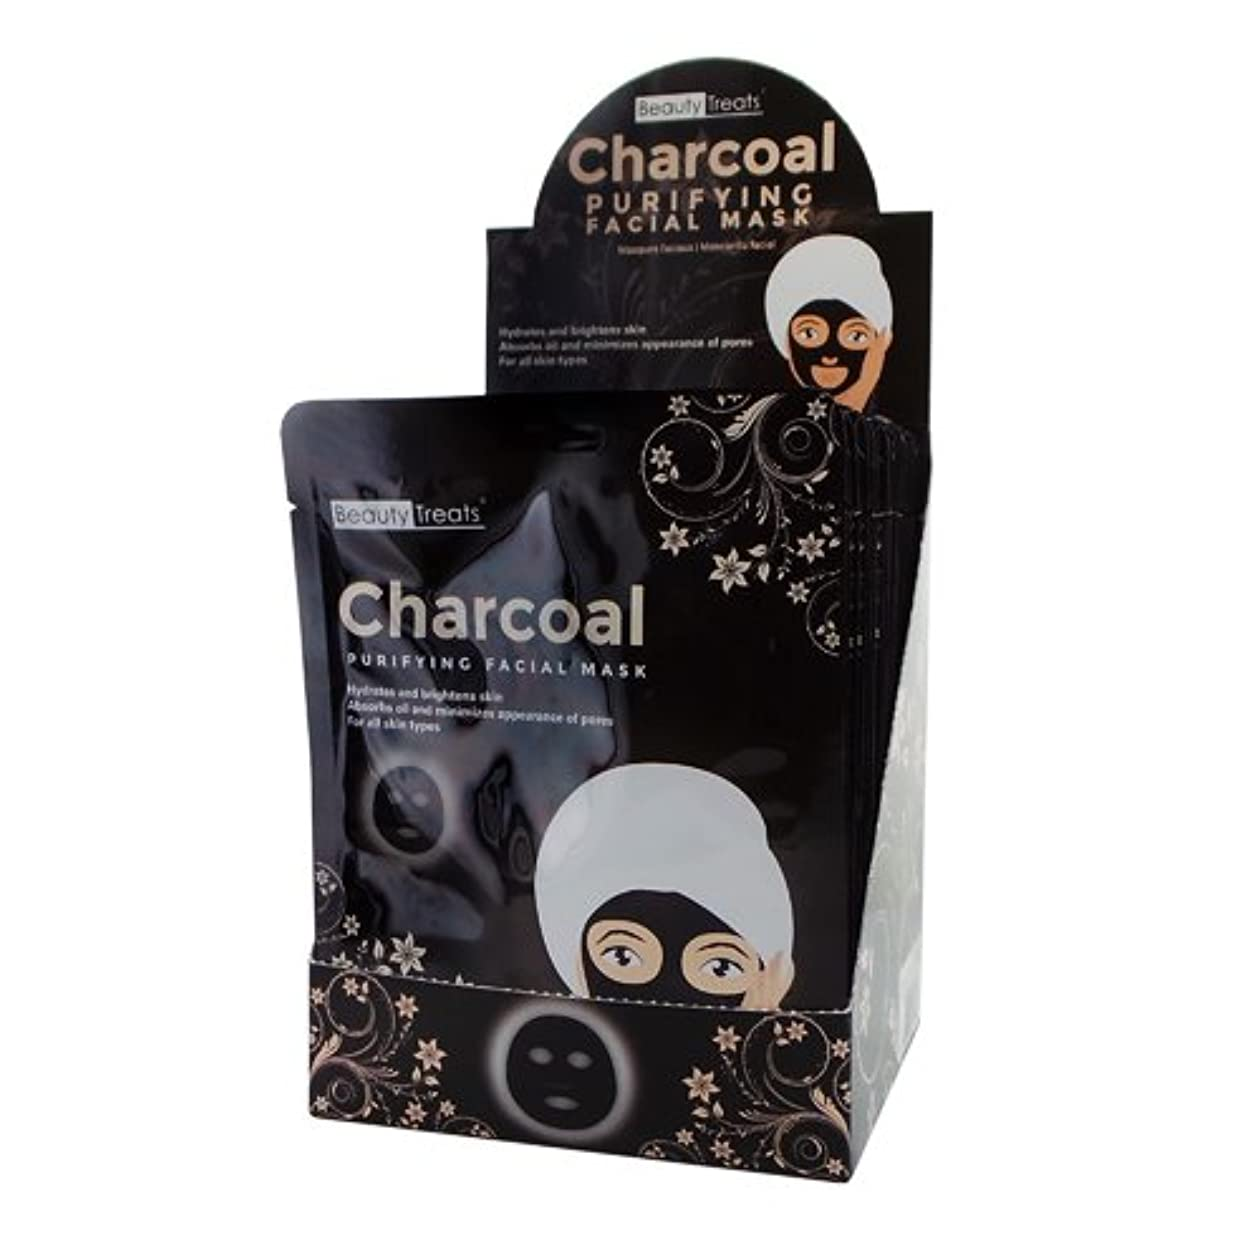 宣言デッドロック一般的に言えばBEAUTY TREATS Charcoal Purifying Facial Mask Display Box - 24 Pieces (並行輸入品)